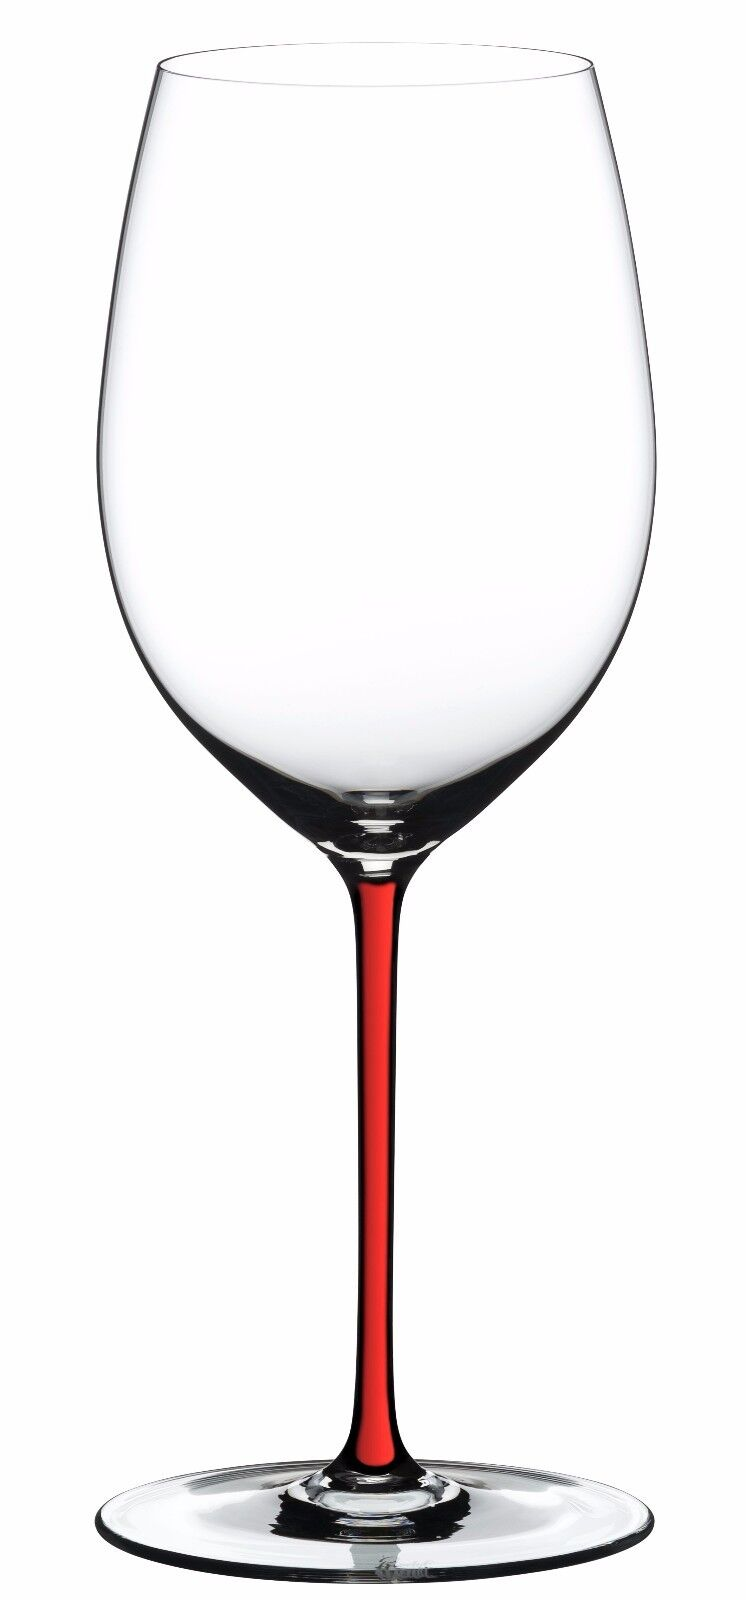 Riedel Fatto A Mano Cabernet   Merlot rouge Wine Glass rouge Stem 4900 0R NEW